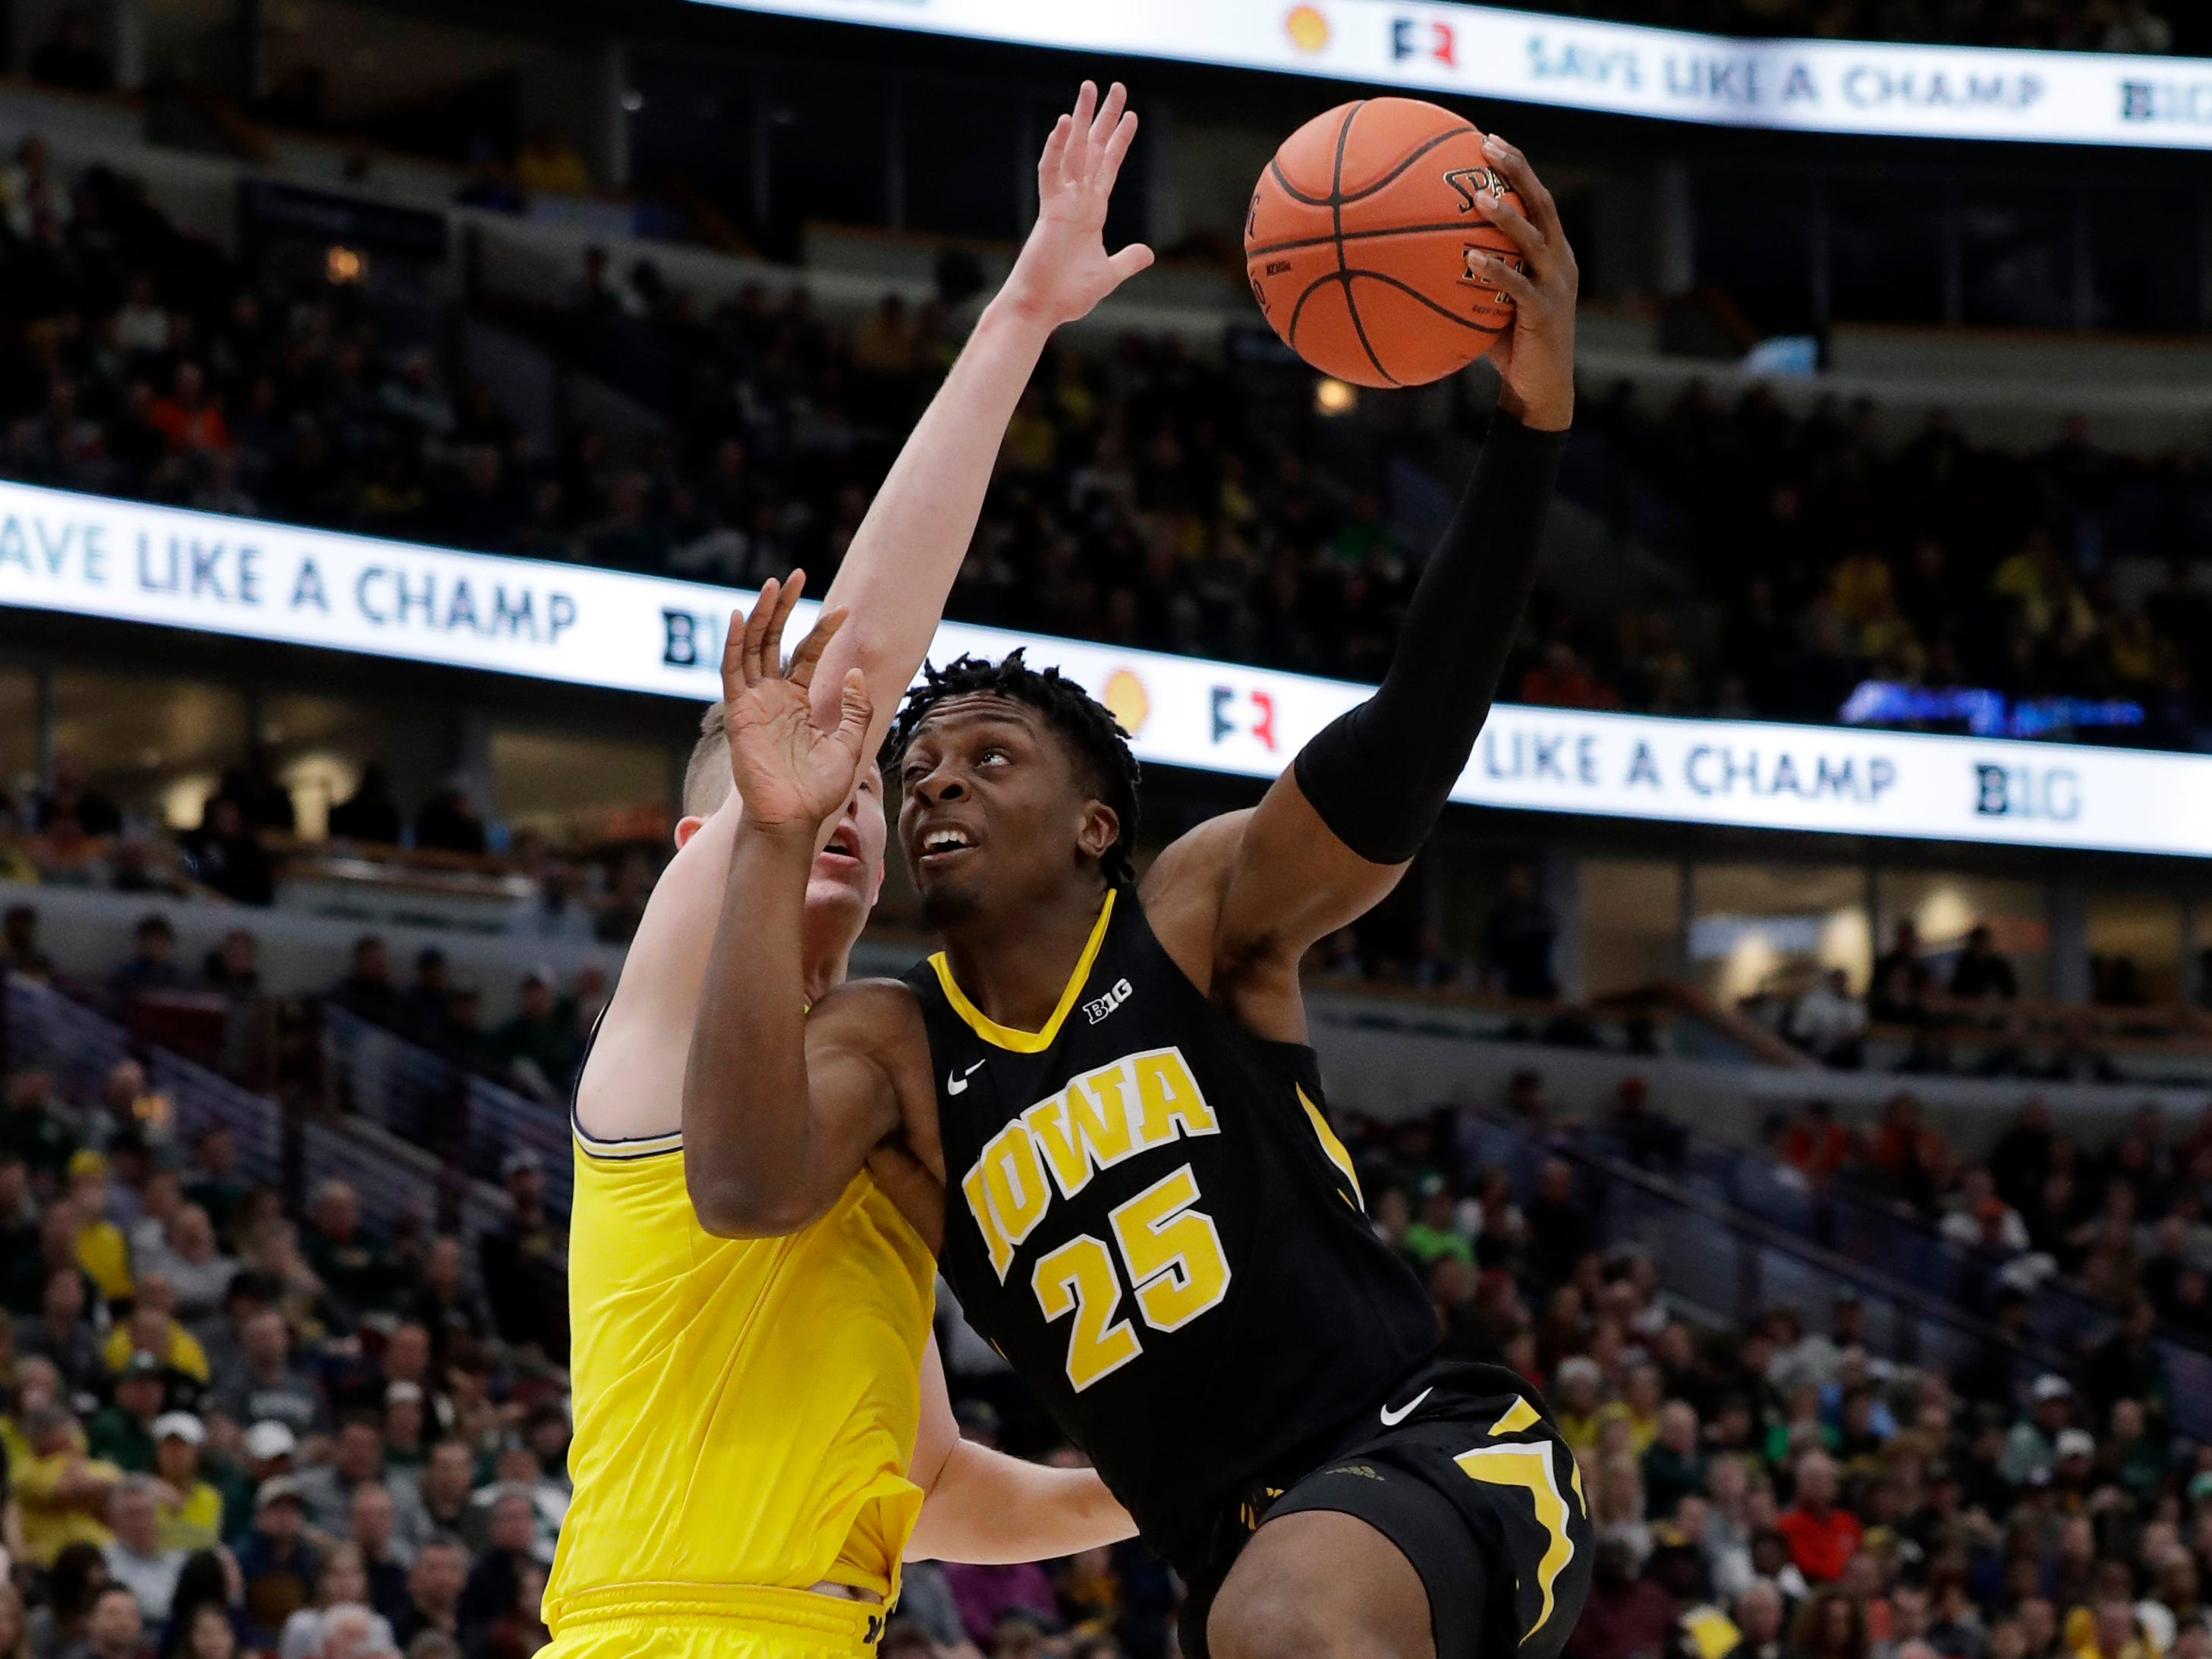 Iowa's Tyler Cook (25) goes up for a basket against Michigan's Jon Teske during the first half.